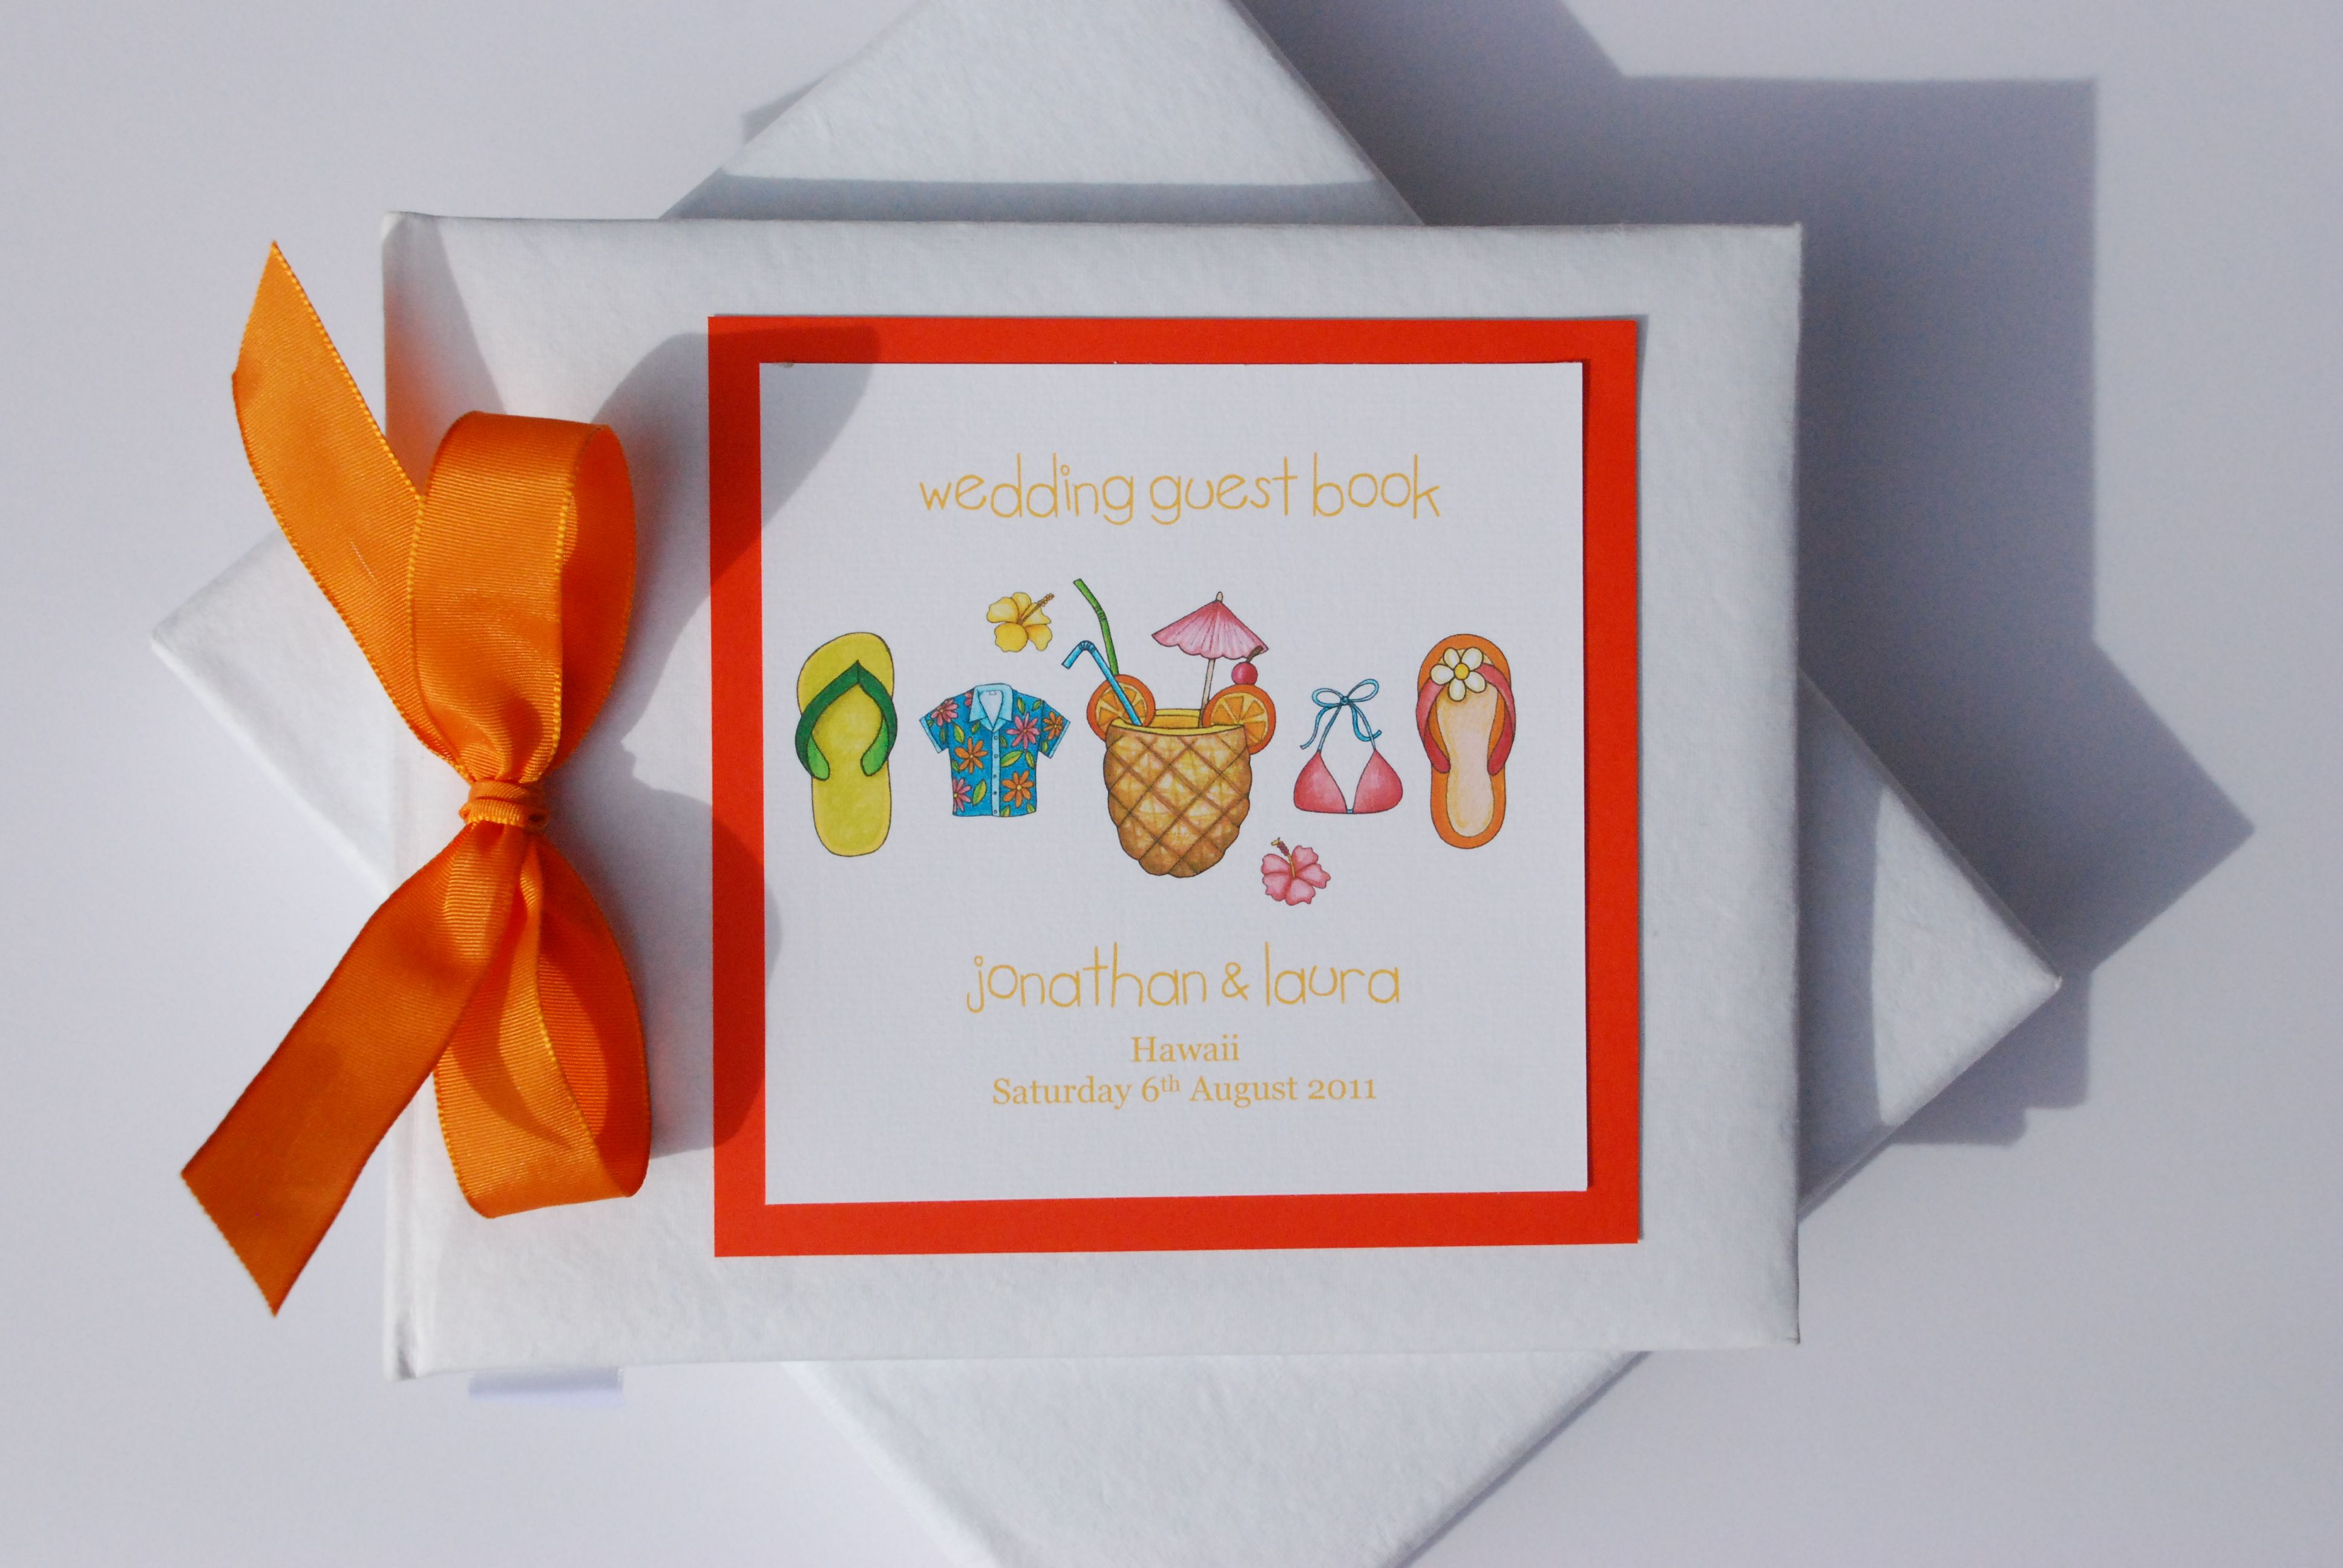 Tropical Themed Wedding Guest Book £25.00 www.beadazzledesigns.co.uk ...